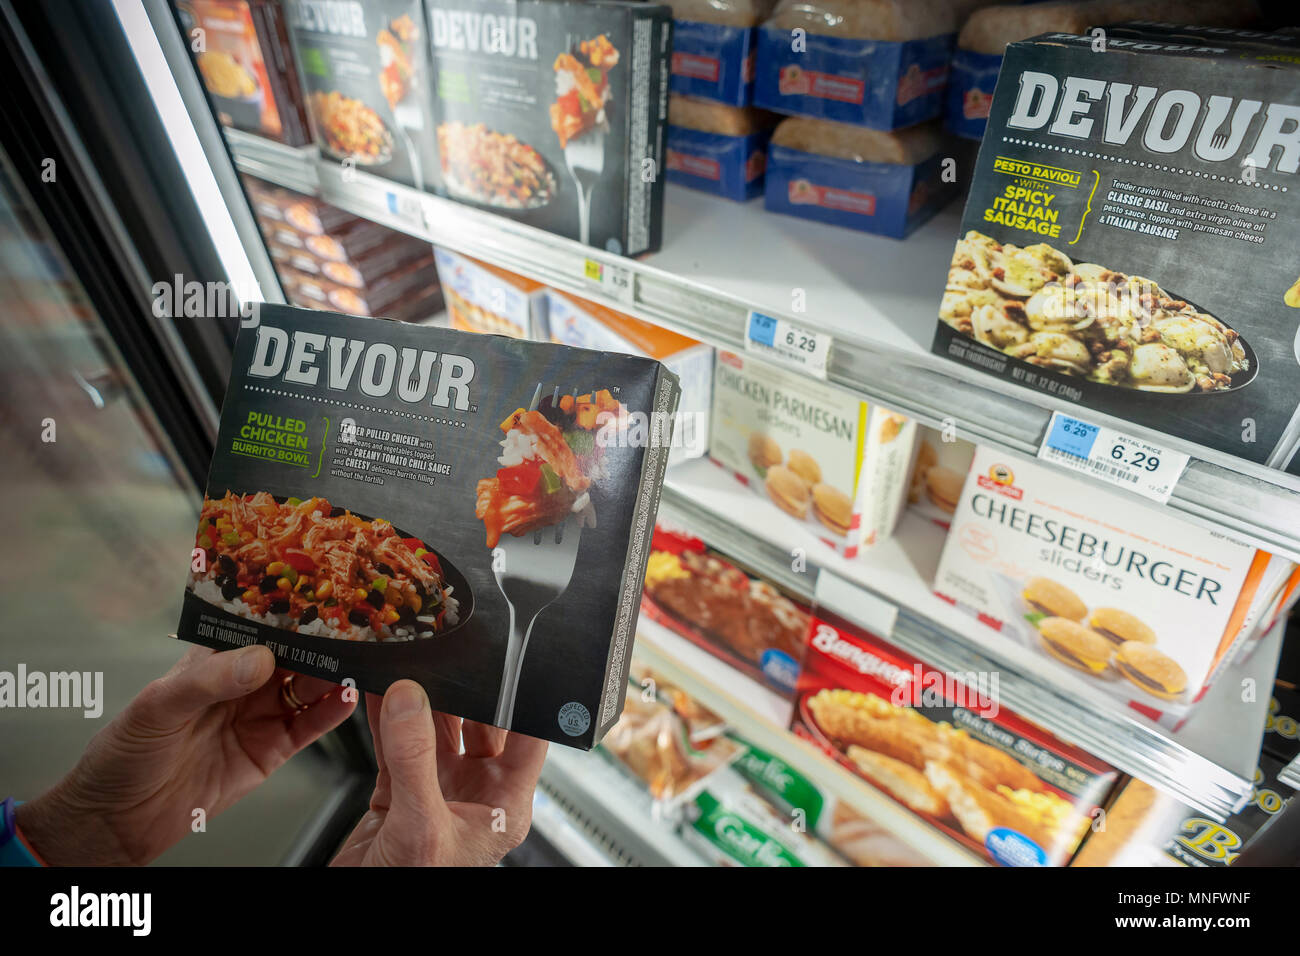 A shopper chooses a package of Kraft Heinz' Devour brand frozen meal in a supermarket freezer in New York on Tuesday, May 15, 2018. (© Richard B. Levine) - Stock Image